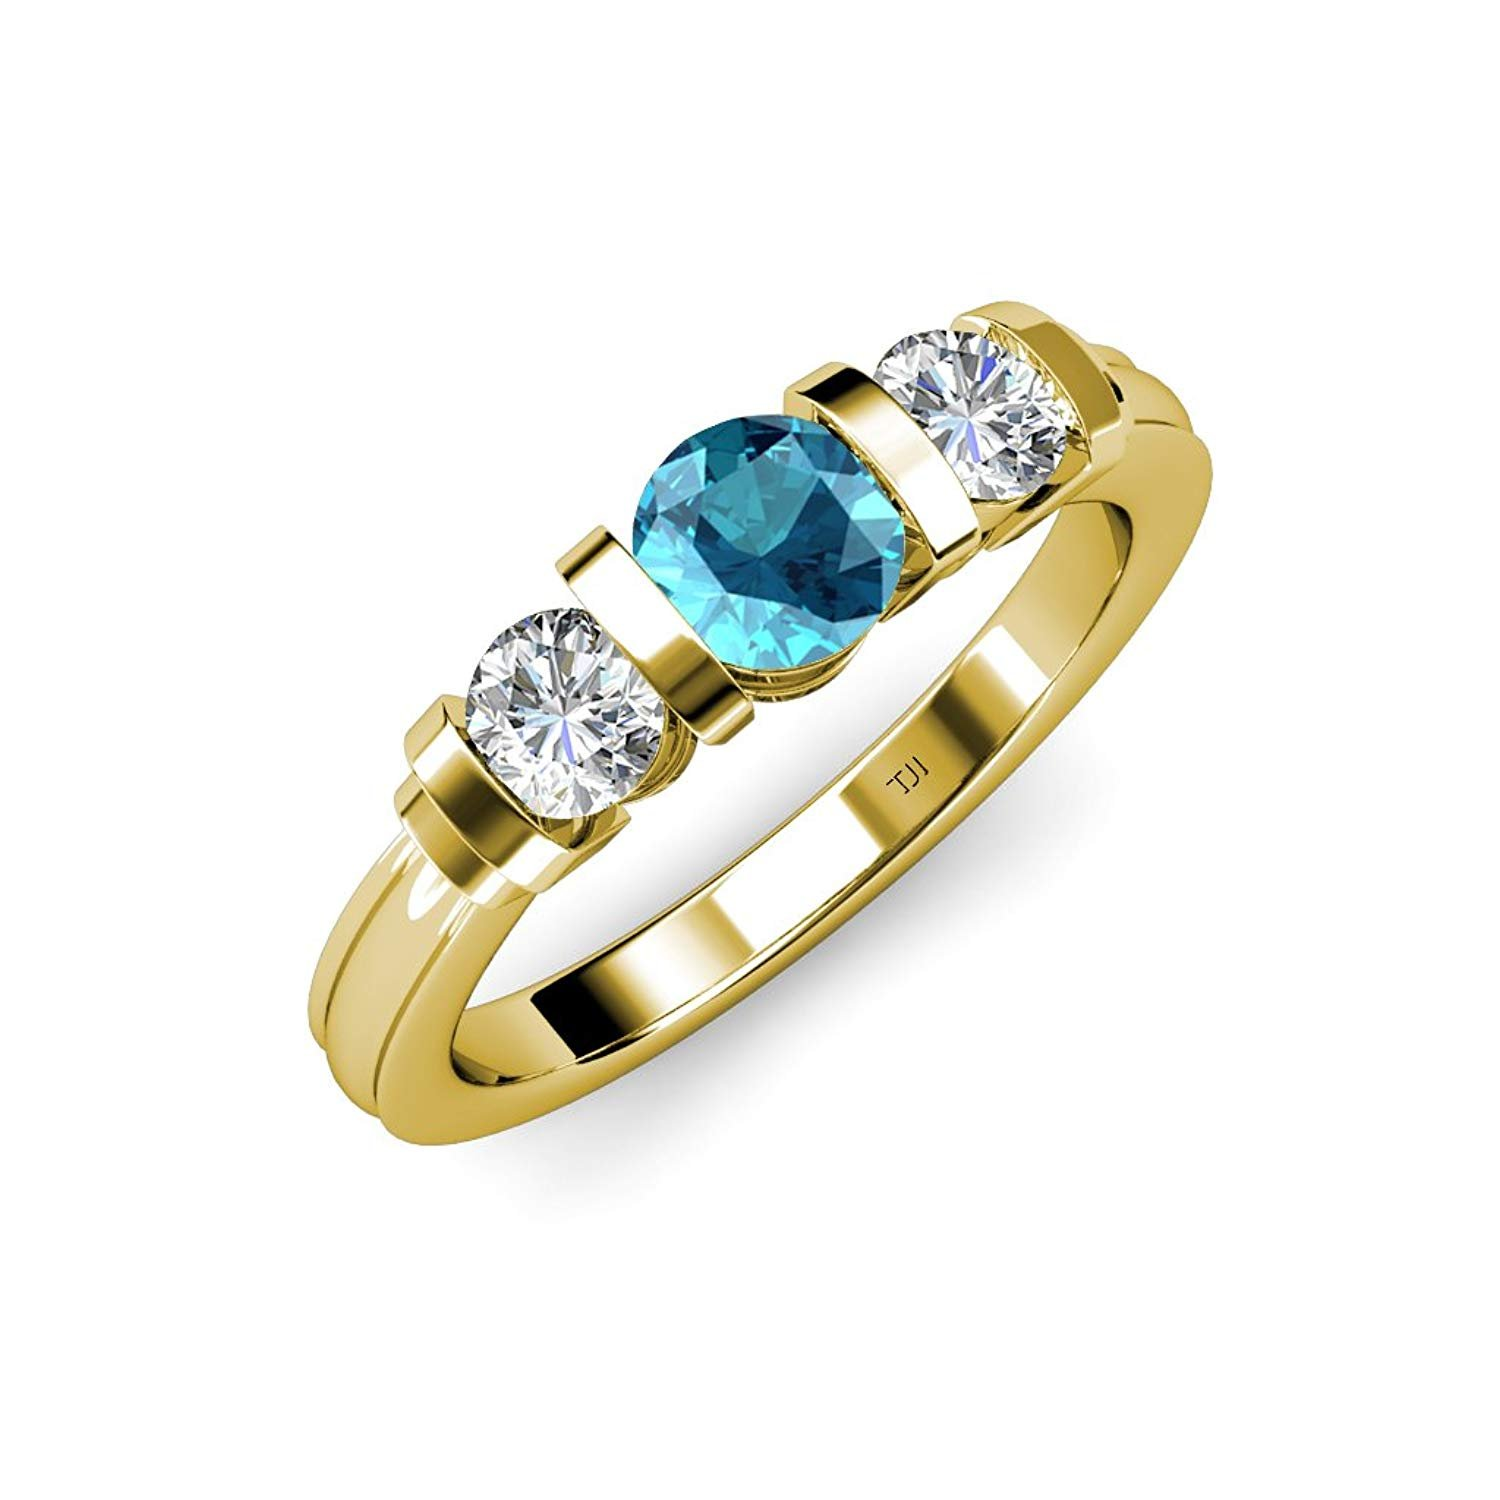 London Blue Topaz and Diamond (SI2-I1, G-H) Bar Set Three Stone Ring 1.20 ct tw in 14K Yellow Gold.size 8.0 by TriJewels